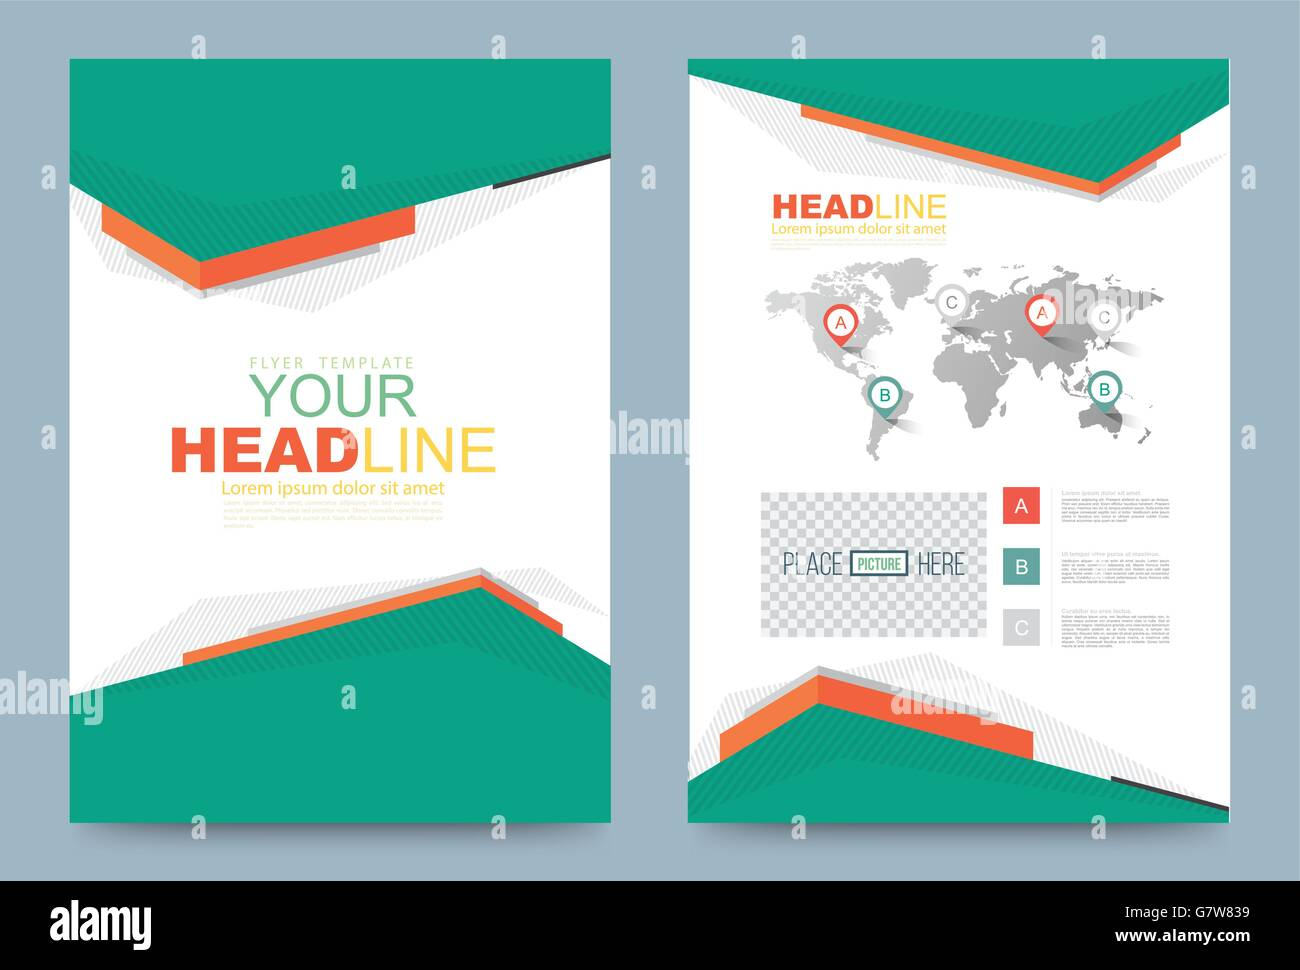 Cover Template Design For Business Annual Report Flyer Brochure Stock Vector Art & Illustration